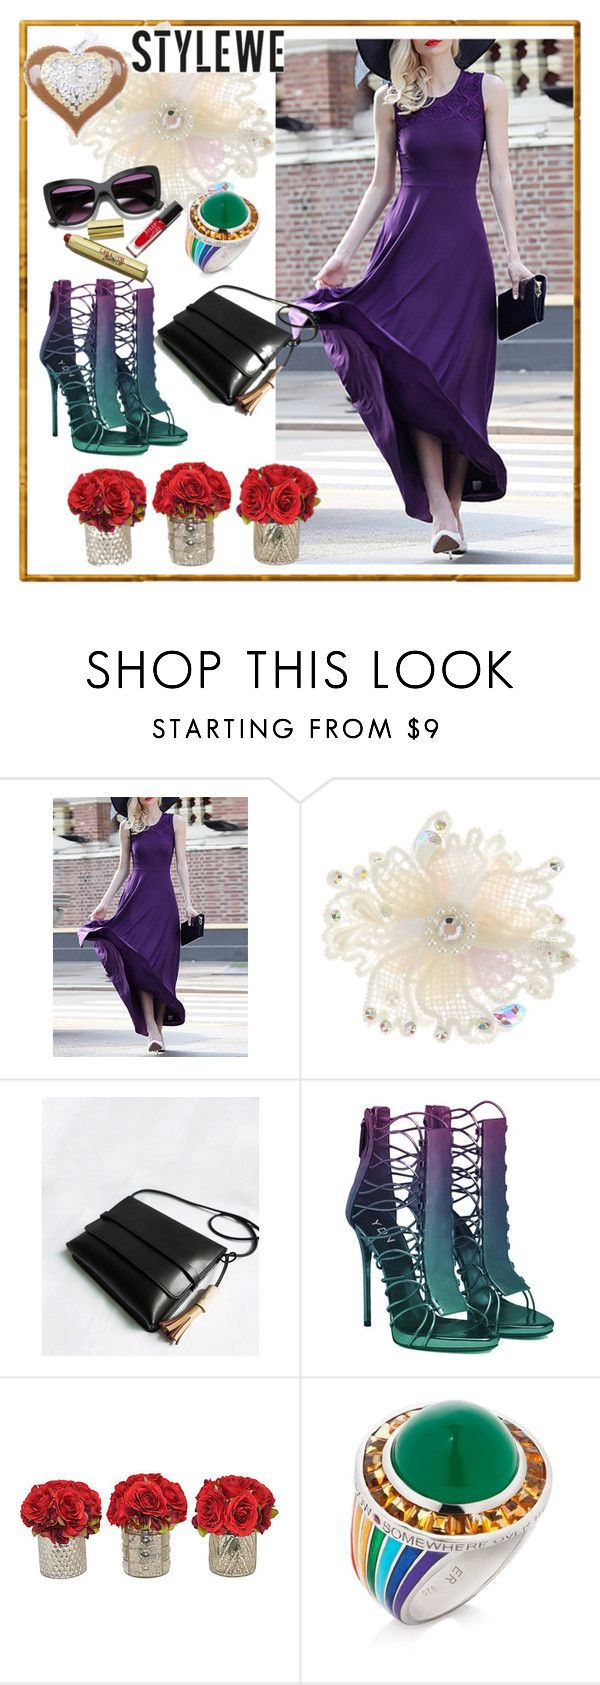 """STYLEWE #7"" by nizaba-haskic ❤ liked on Polyvore featuring Monsoon, The French Bee and Elizabeth Raine"